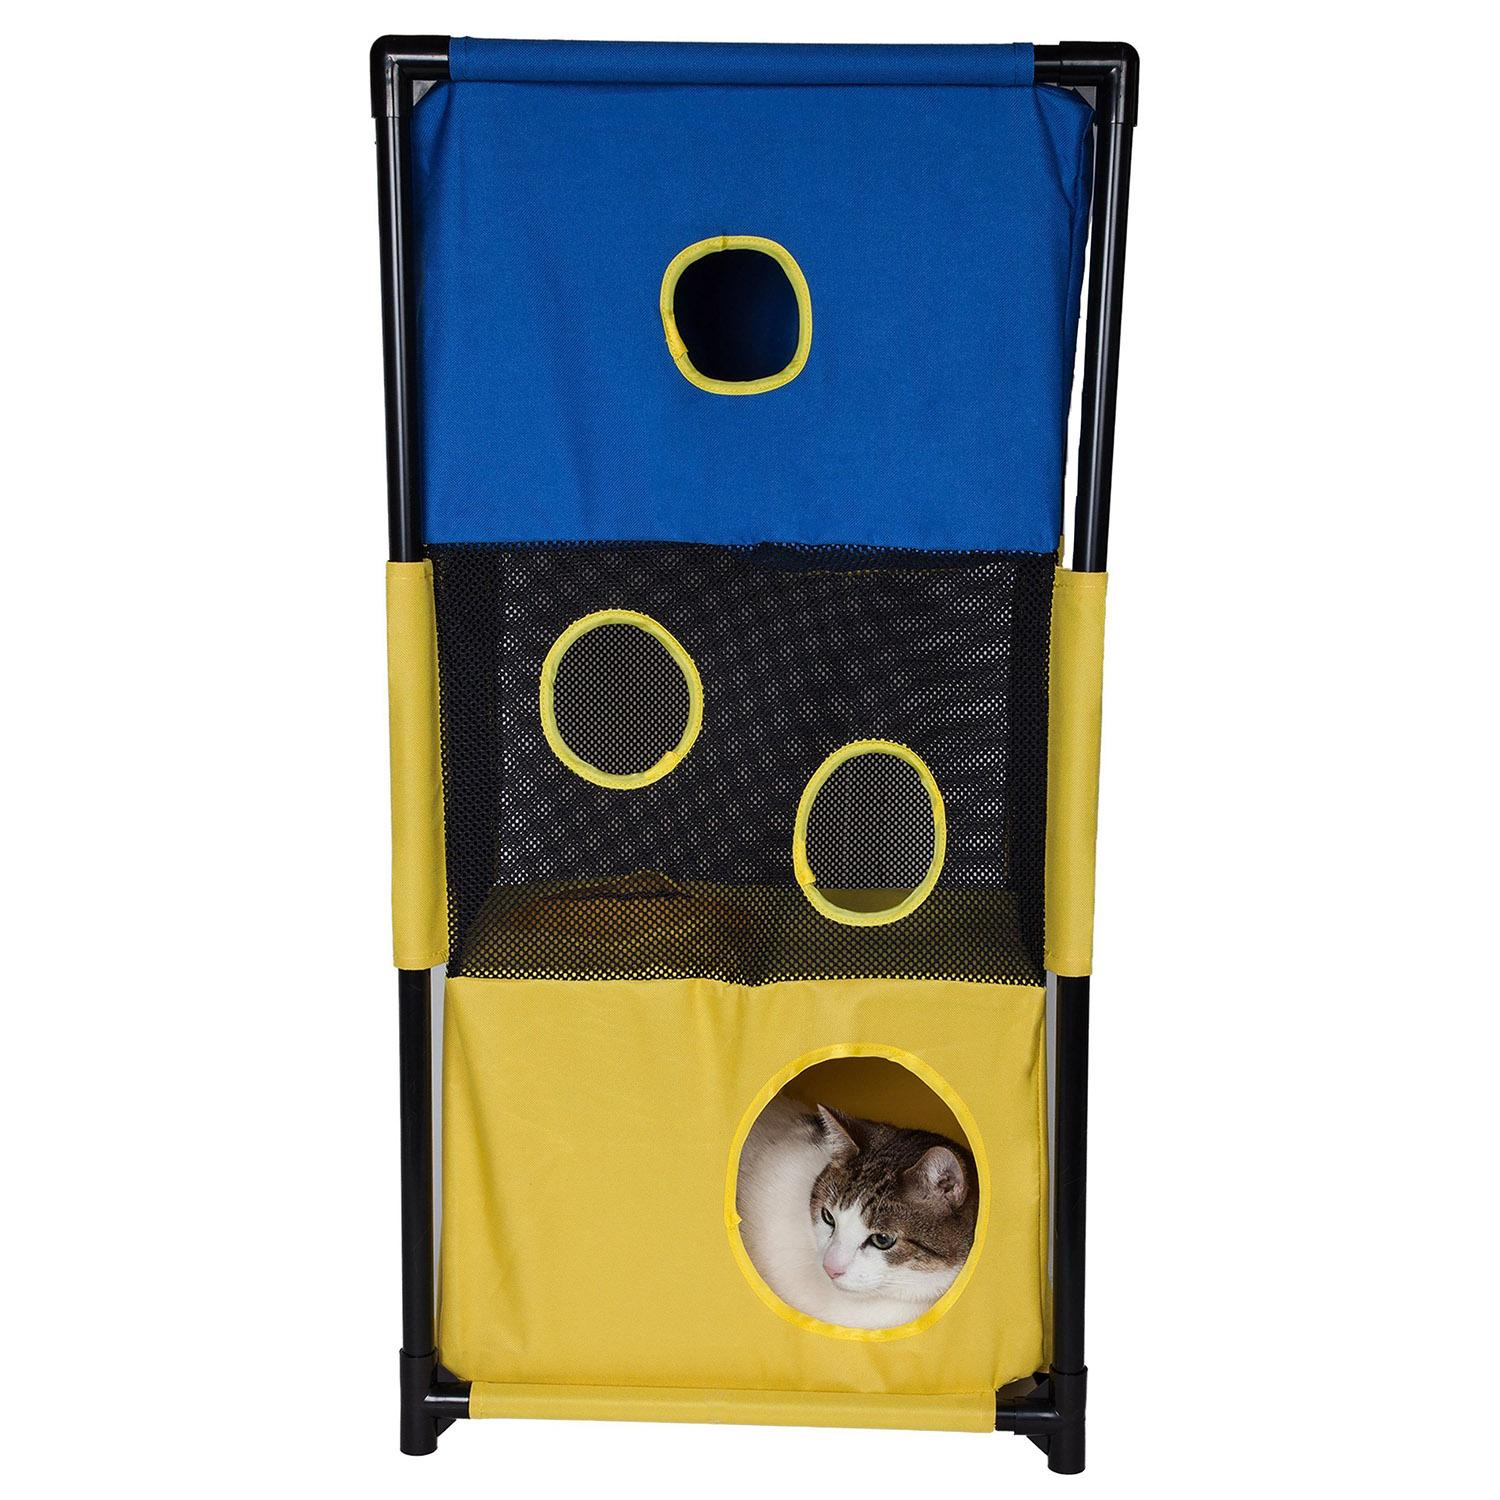 Pet Life 'Kitty-Square' Collapsible Cat Playhouse Lounger - Blue and Yellow